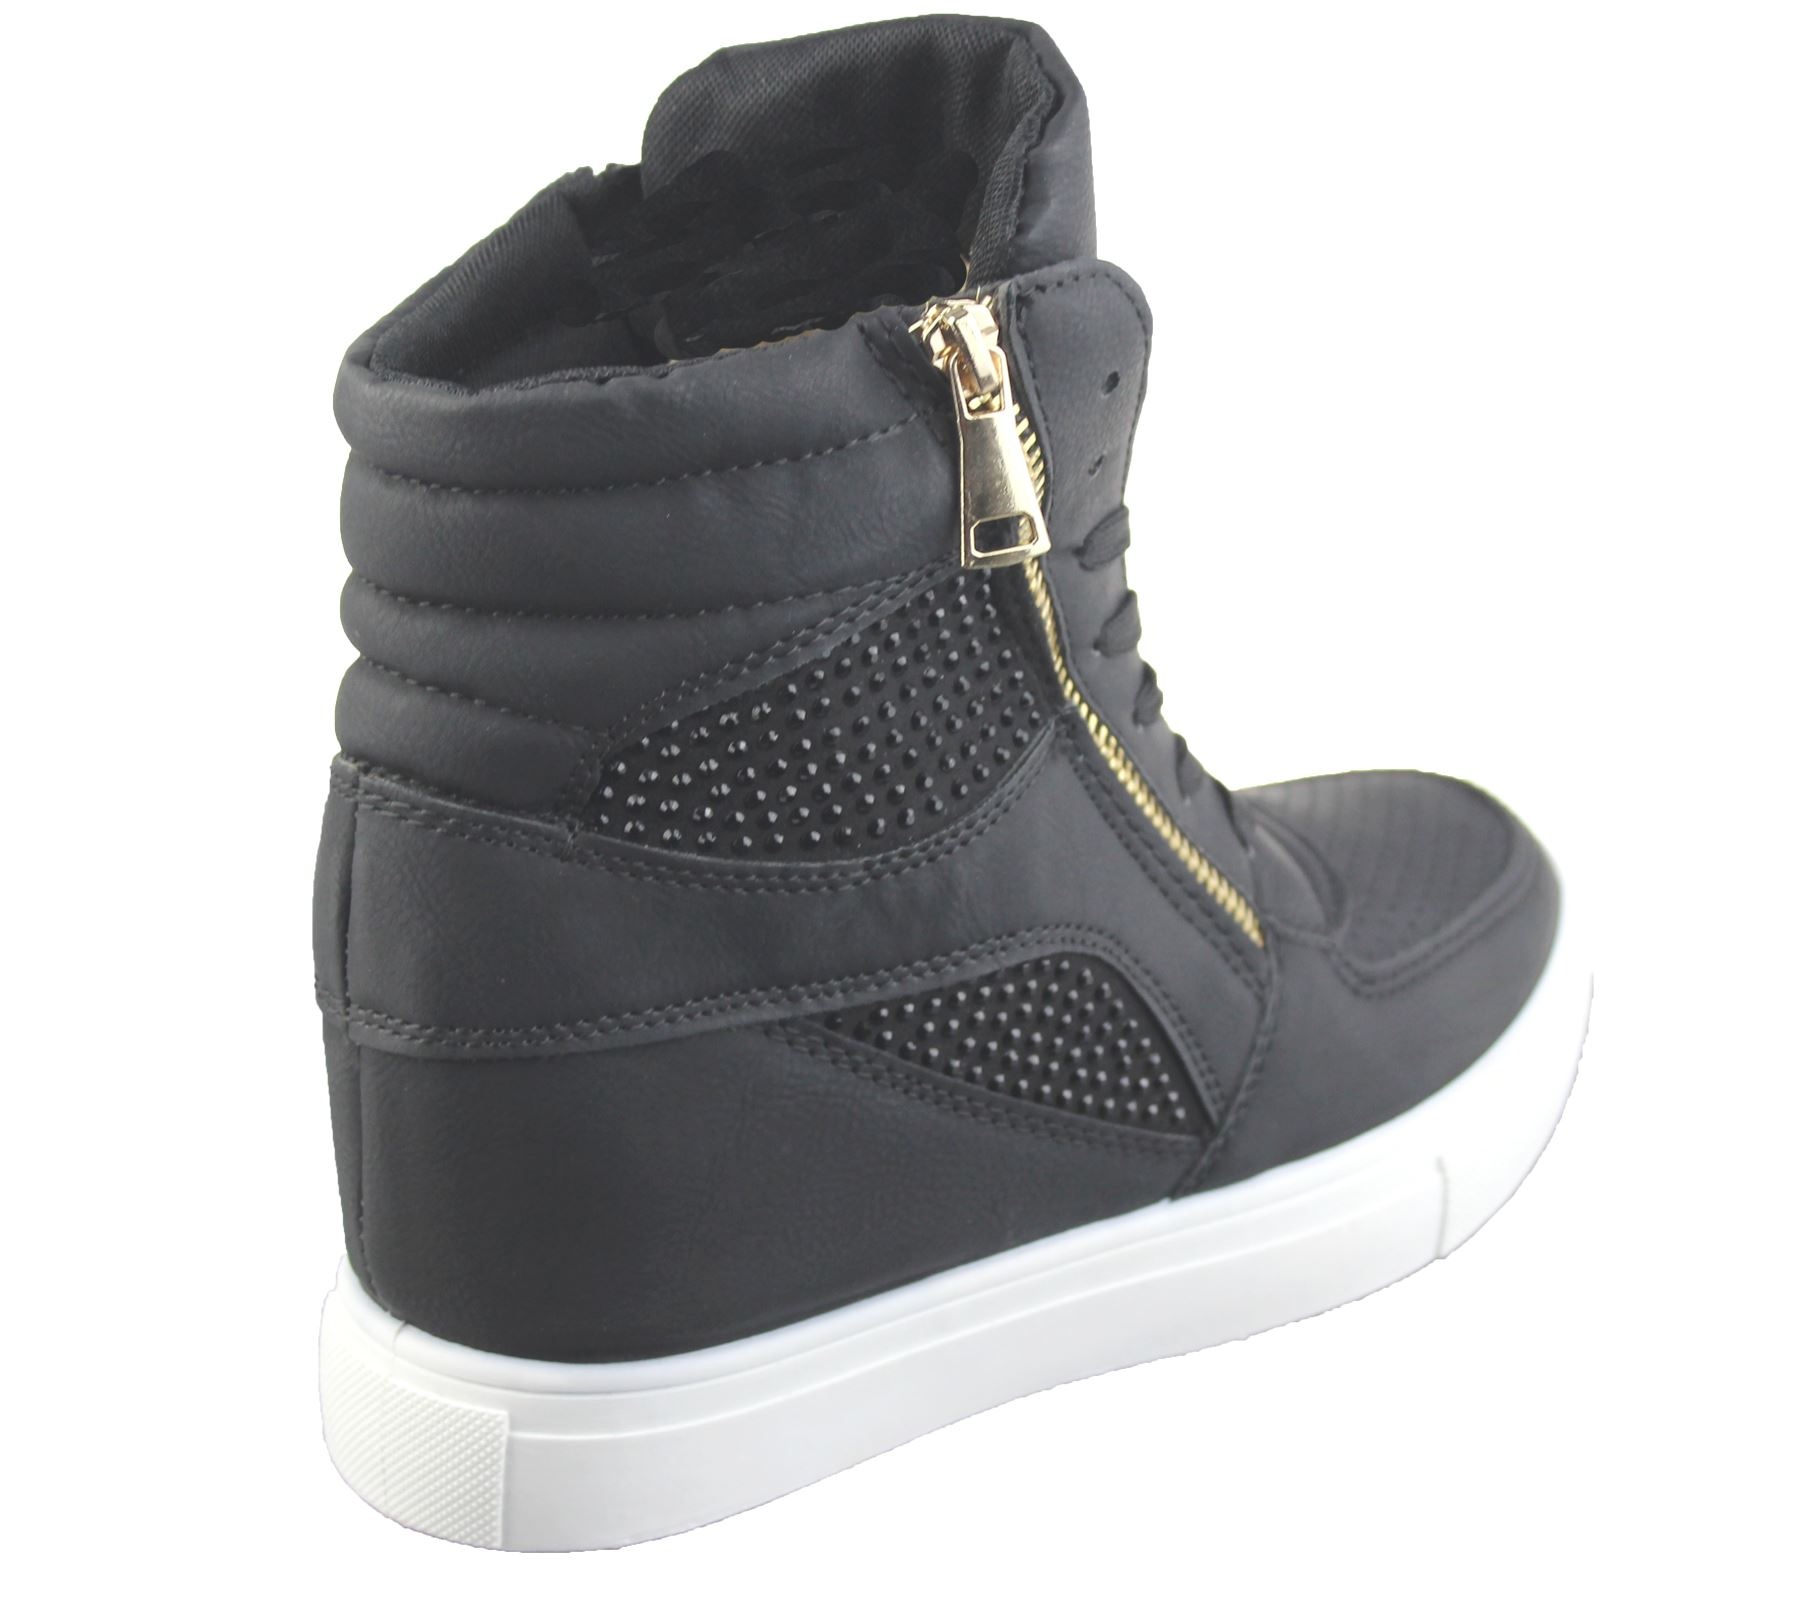 Womens Wedge Trainers Ladies Ankle Boots Sneakers Girl ...